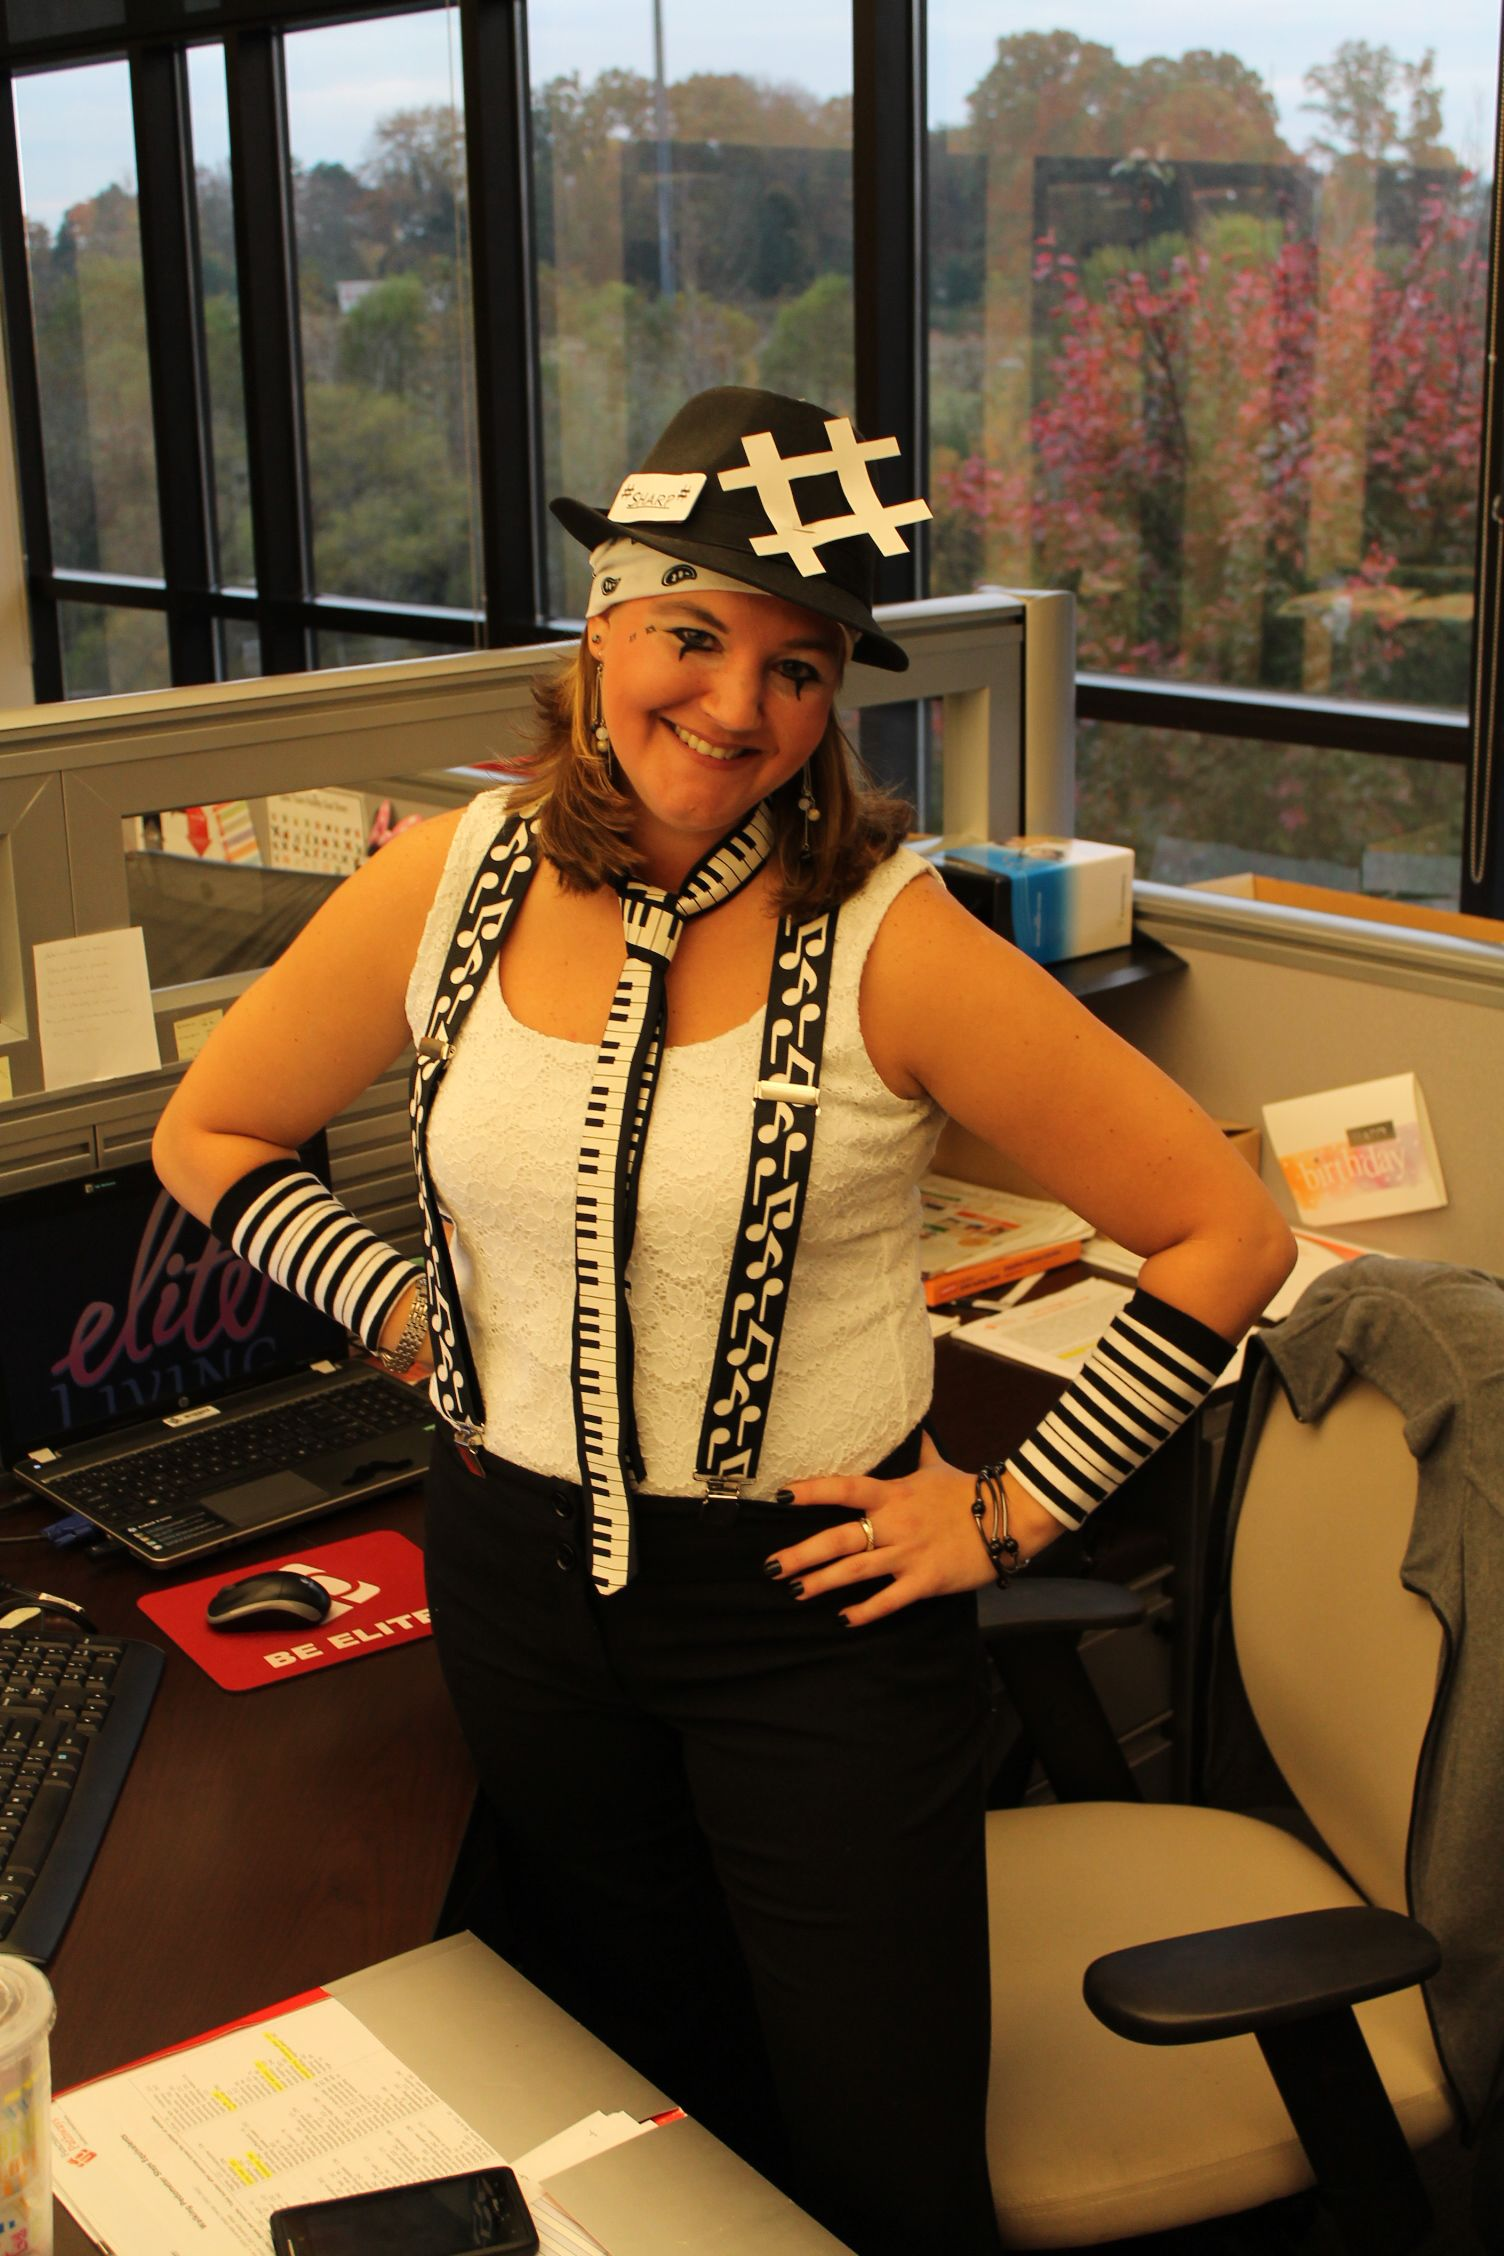 happy halloweenfp spirit week at the corporate office